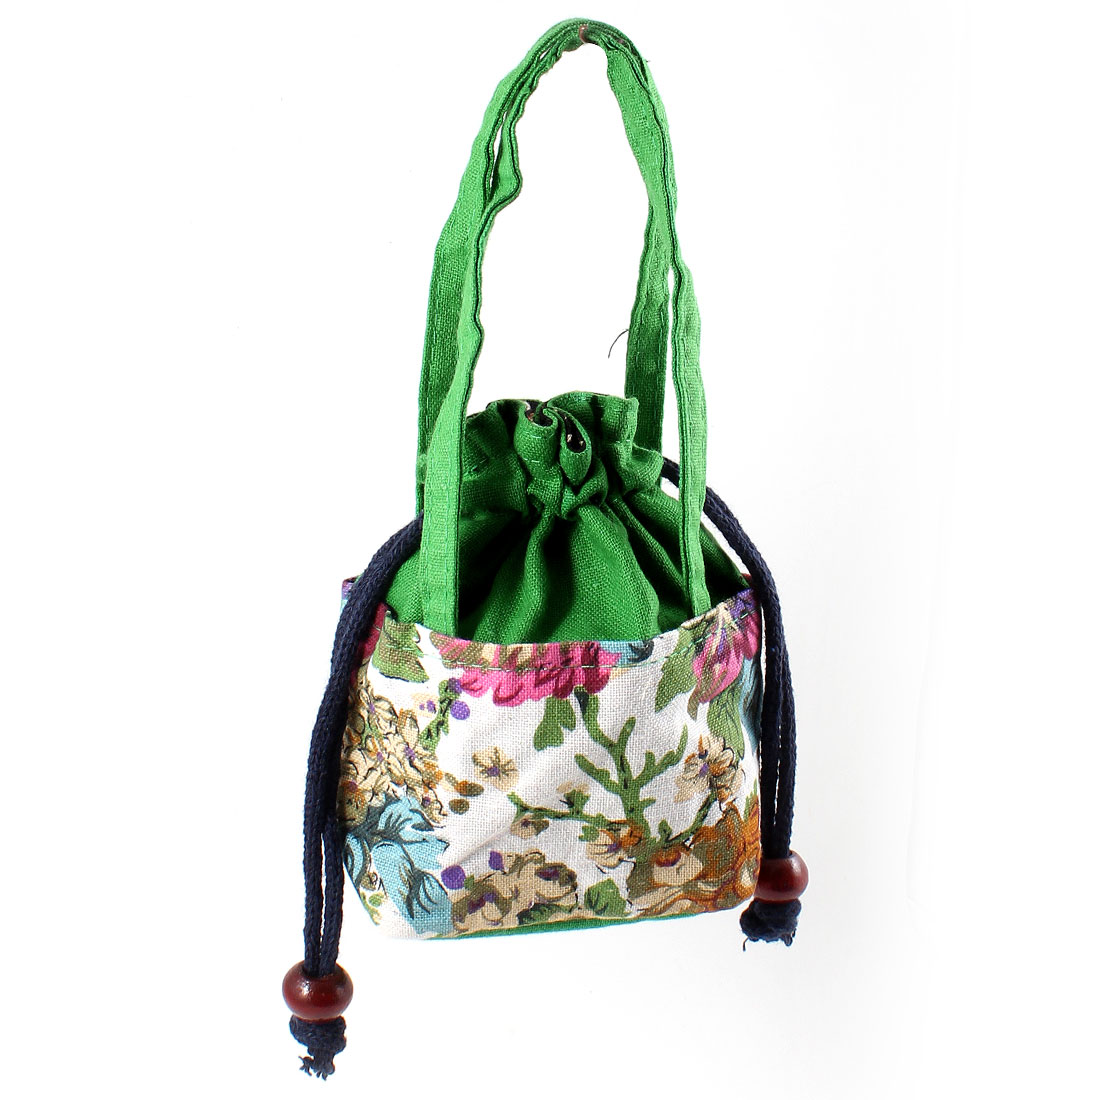 Woman Accessory Regtangle Flower Prints Nylon Purse Tote Handbag Green